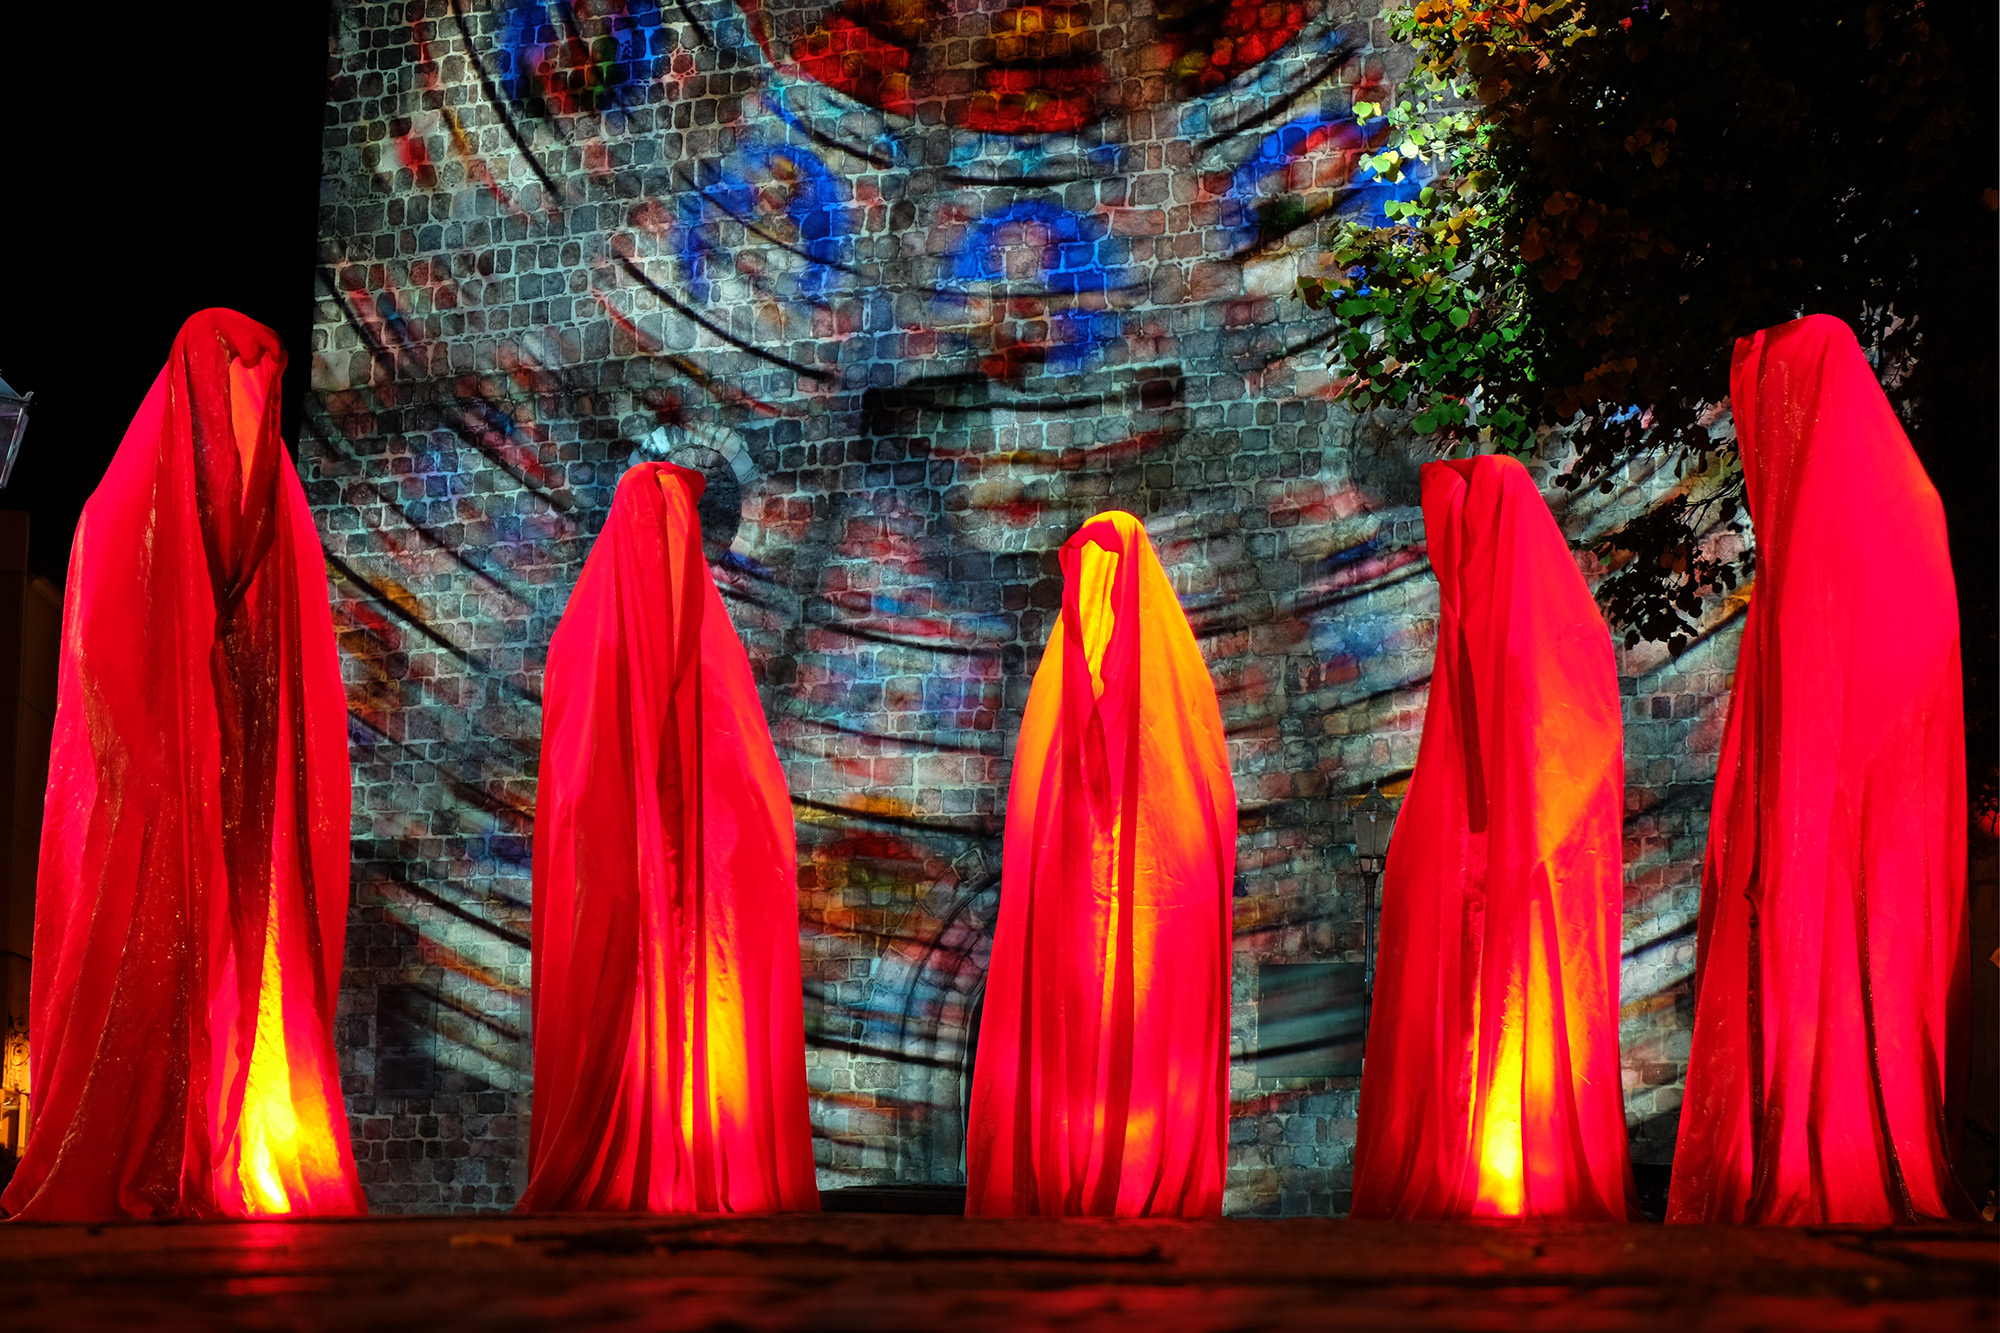 festival-of-lights-berlin-light-art-fine-arts-contemporary-sculpture-glow-guardians-of-time-manfred-kili-kielnhofer-statue-gallery-museum-festival-9028y